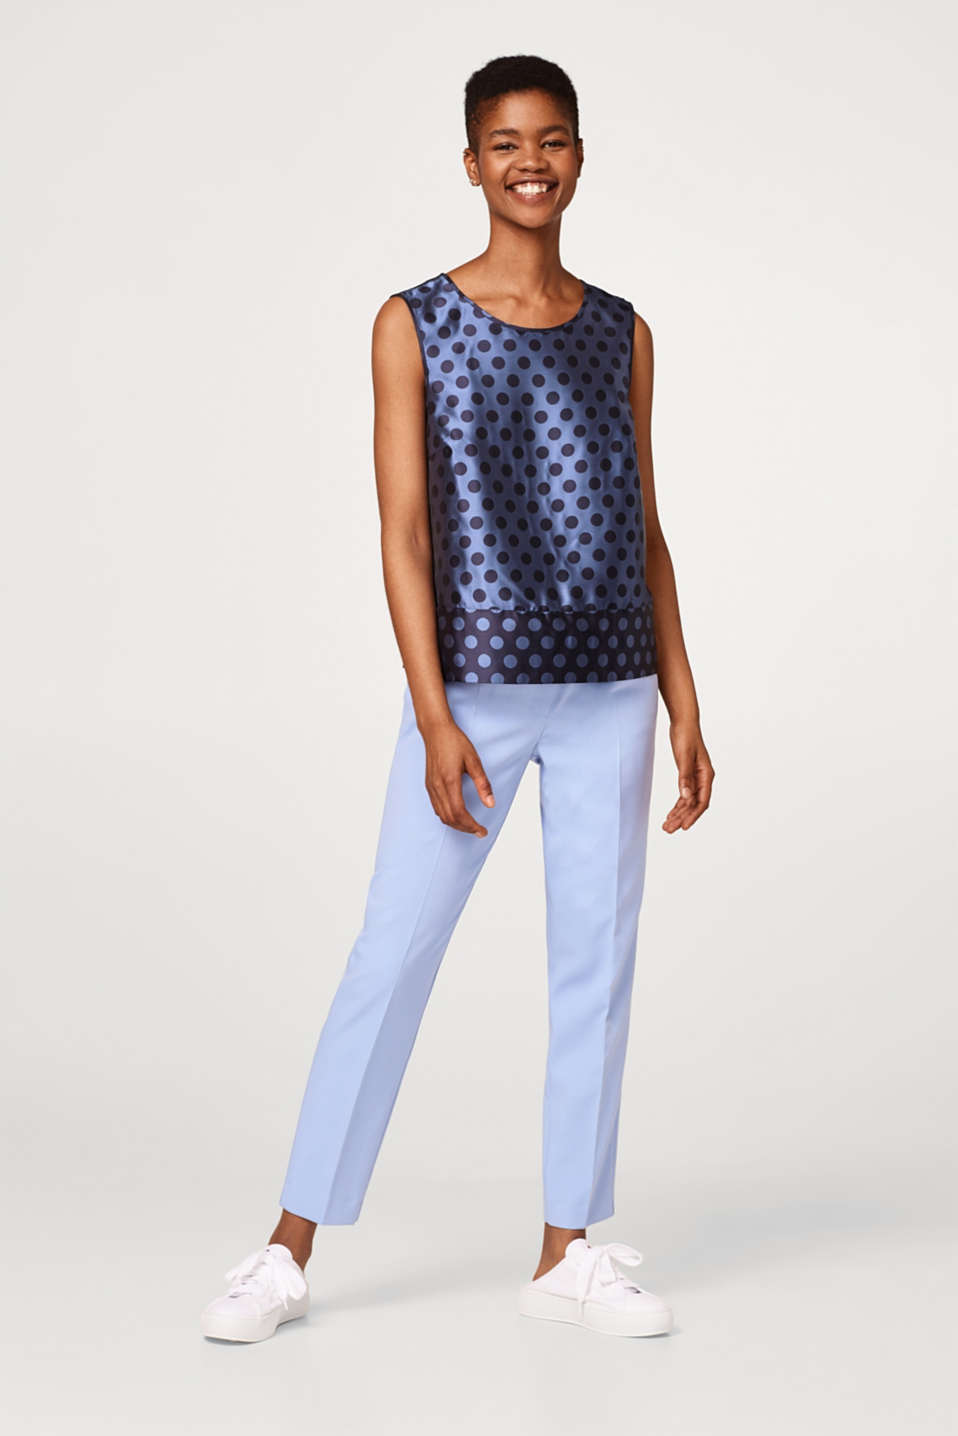 Jacquard blouse with polka dot pattern